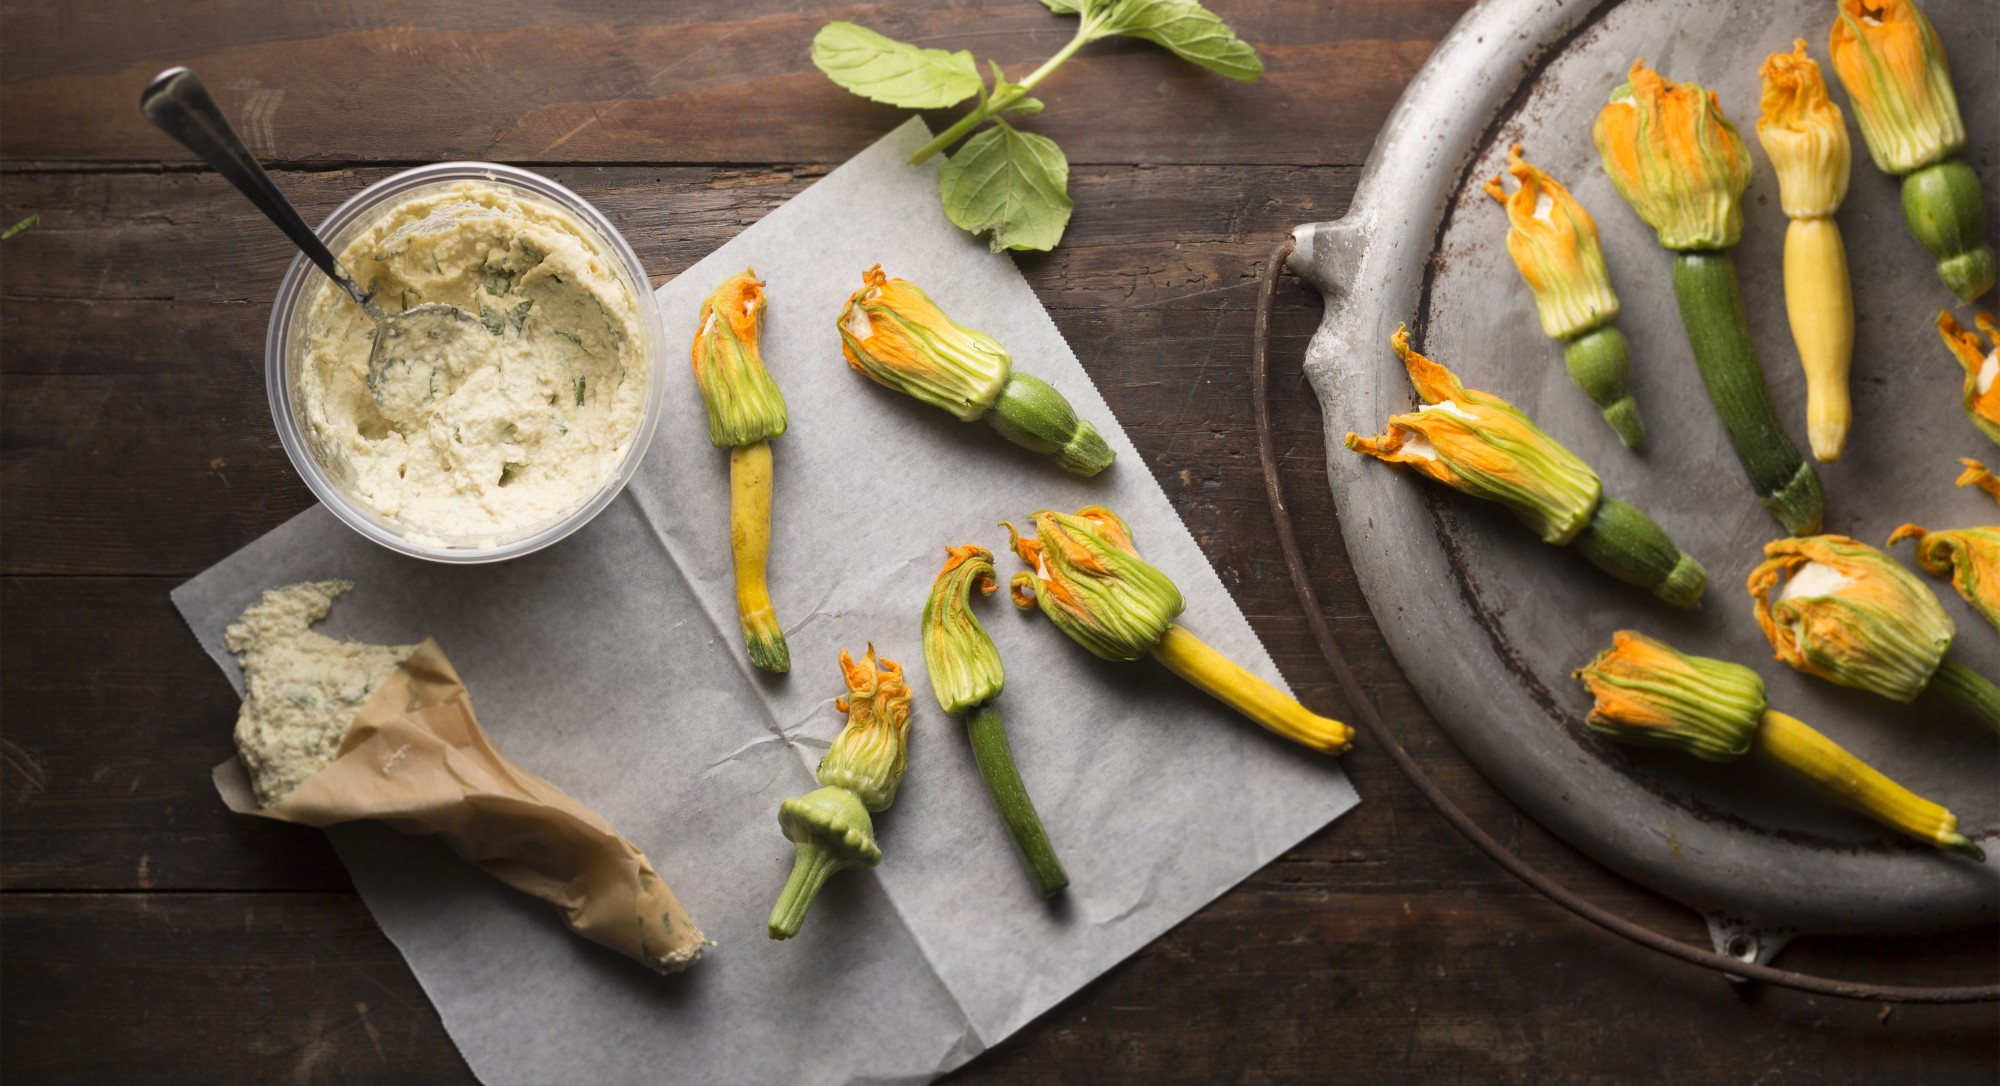 Farmers Market Find: A Fresh Twist on Stuffed Squash Blossoms